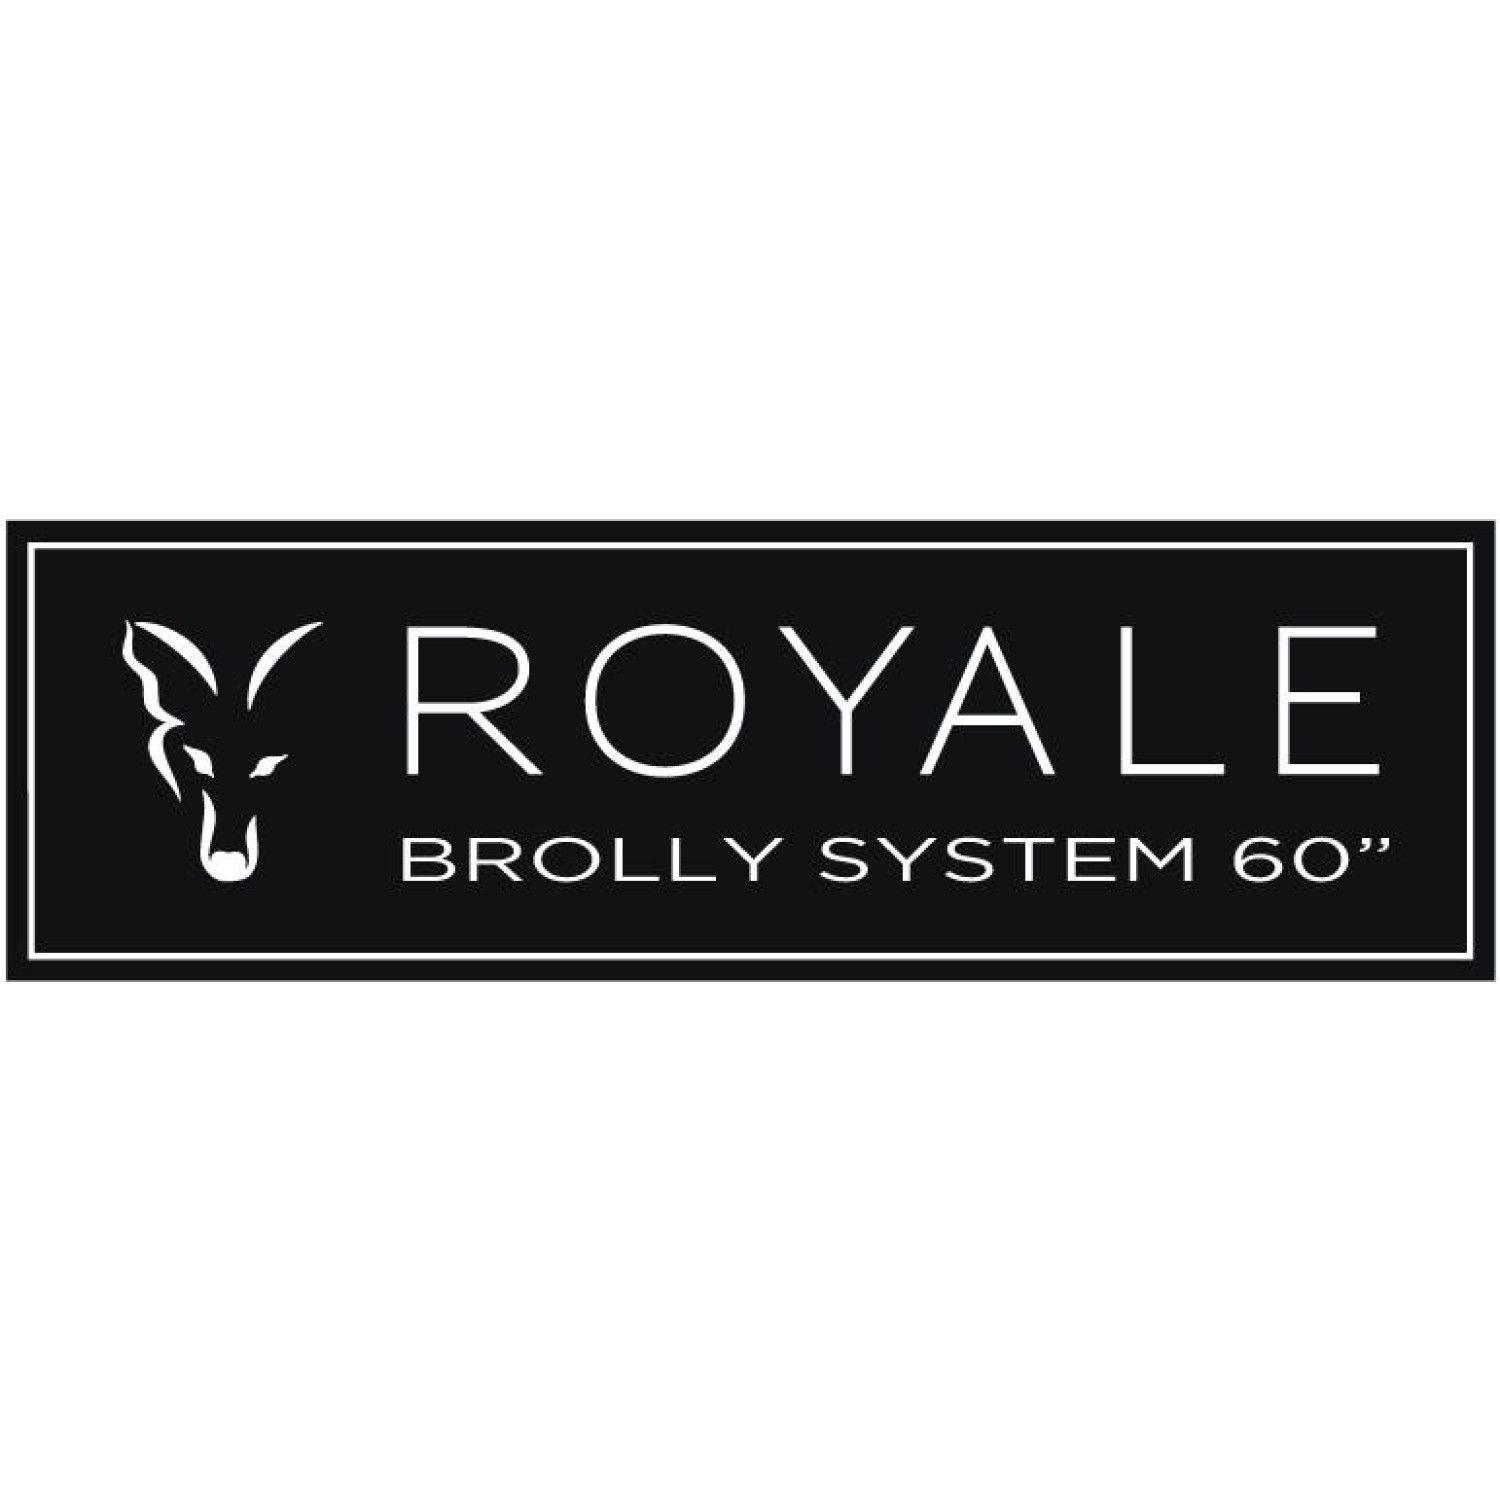 "FOX Royale 60"" Brolley System"